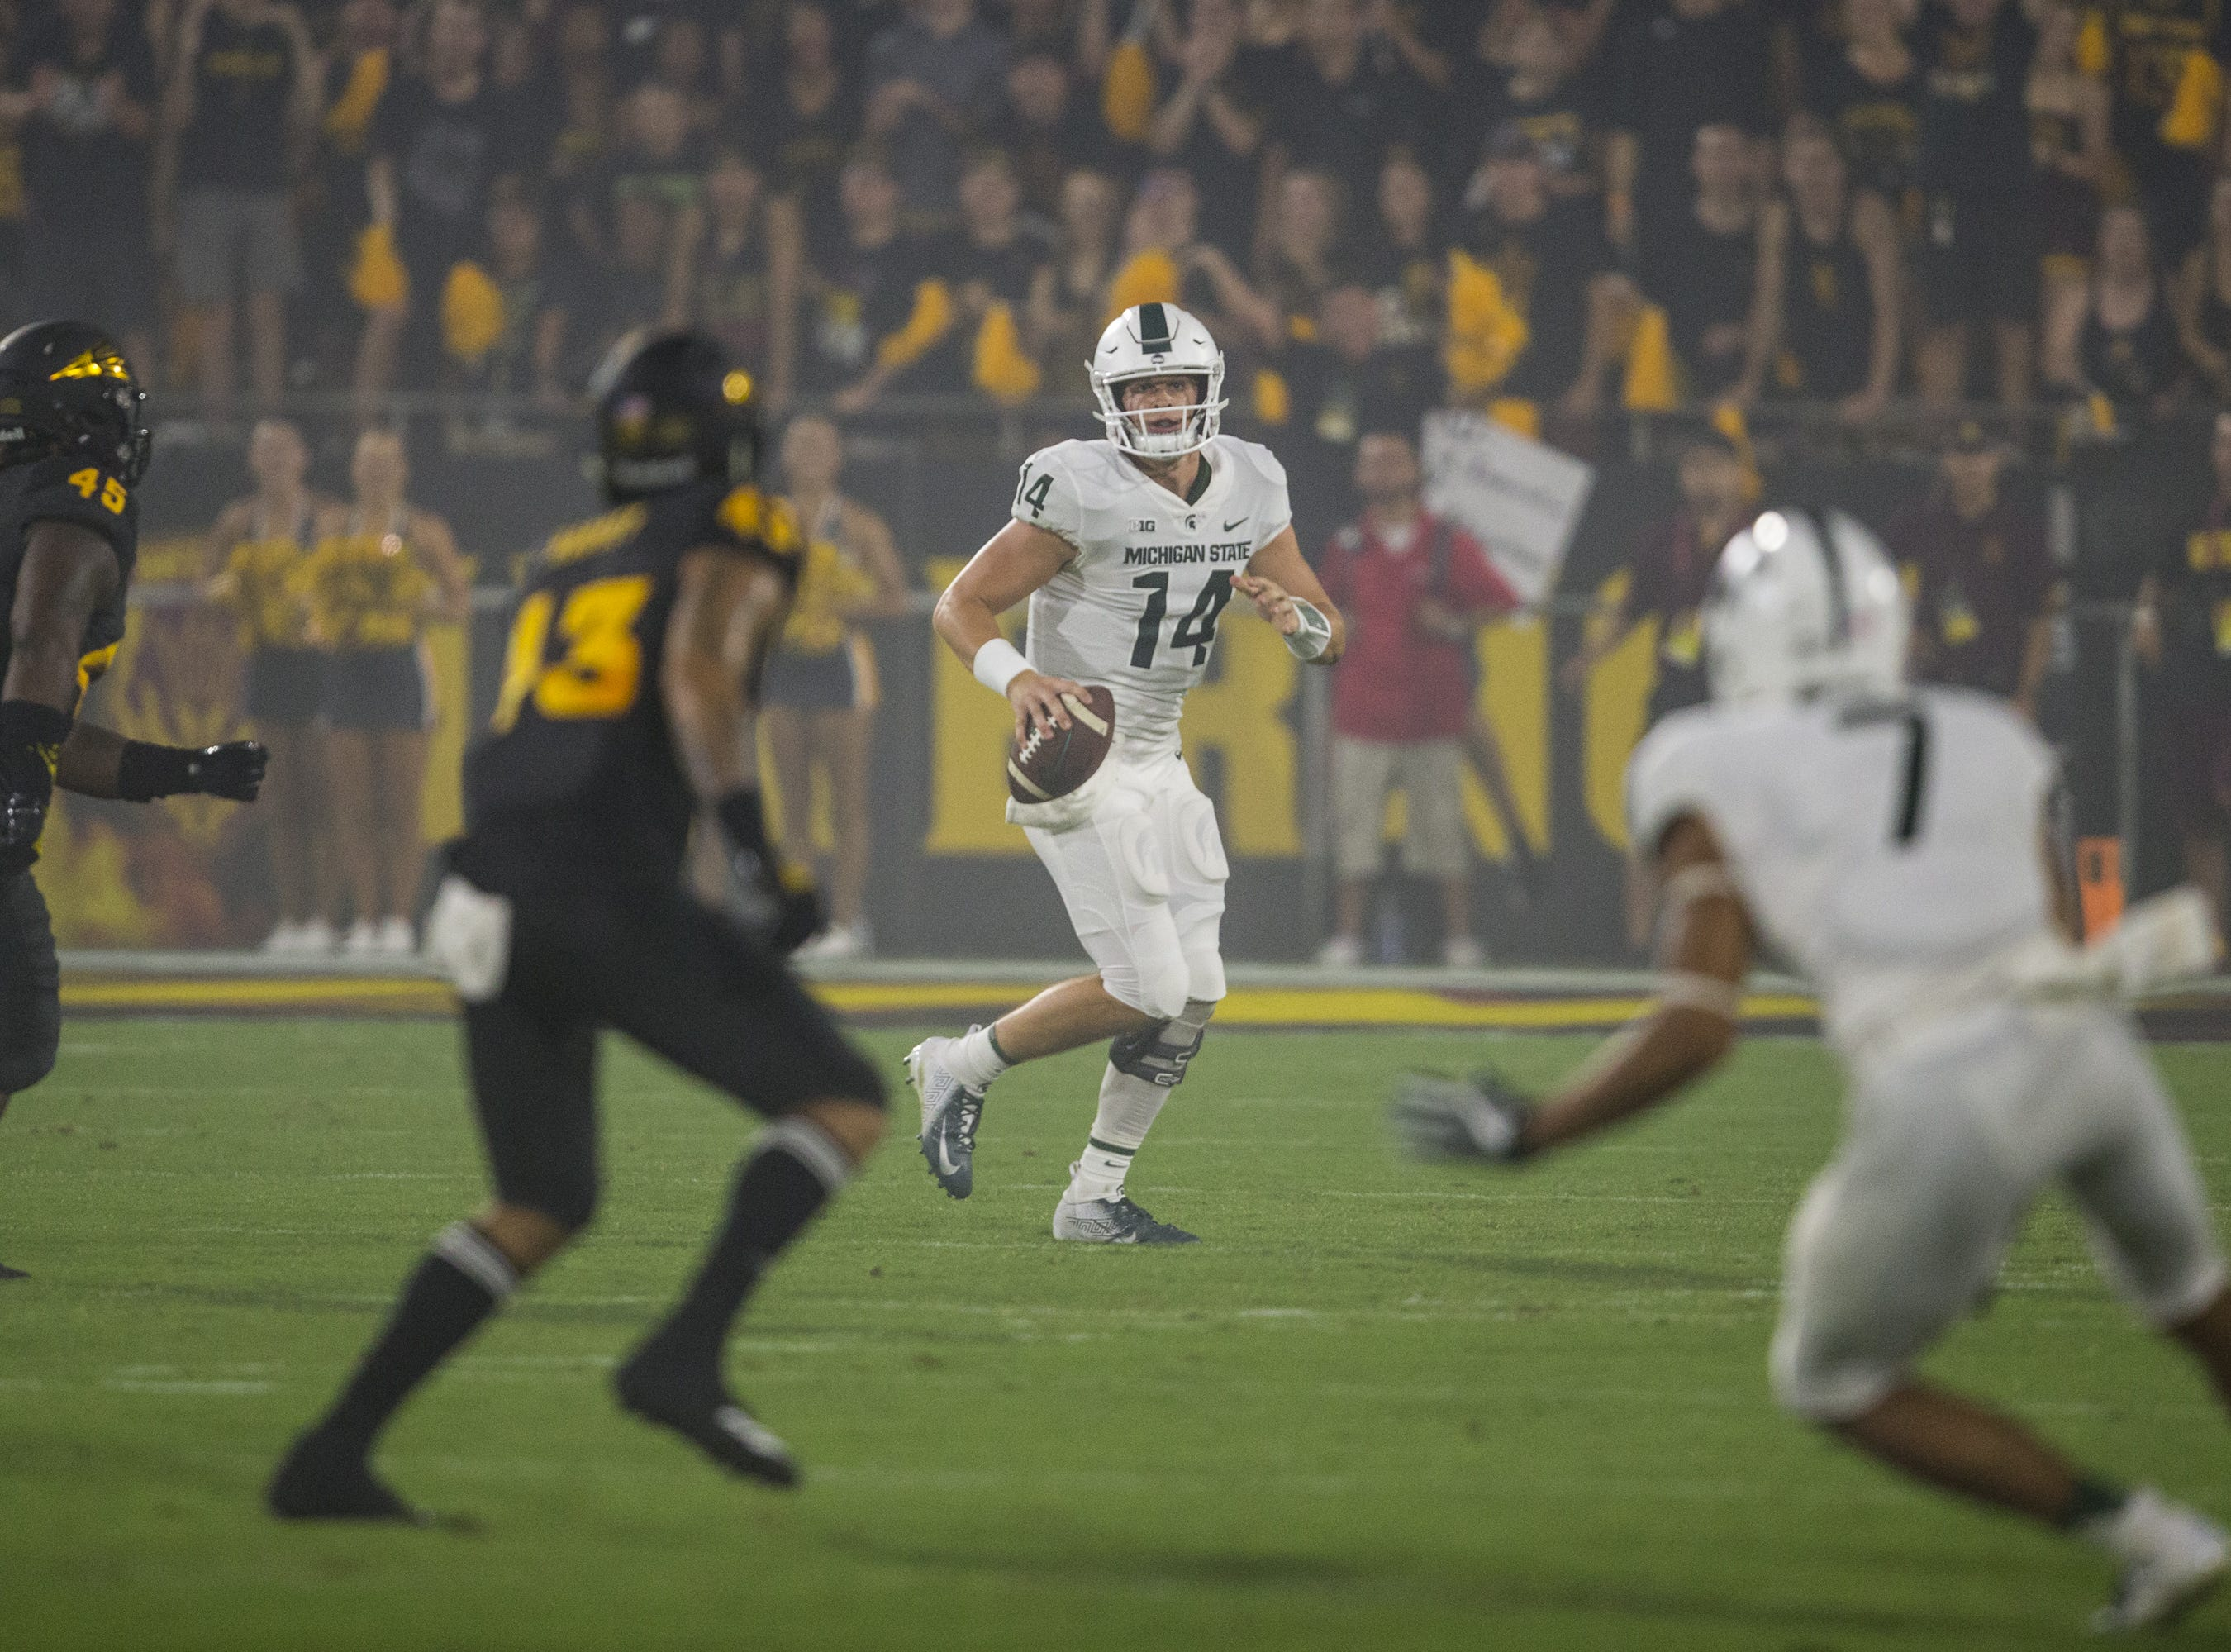 Michigan State's Brian Lewerke looks to pass against Arizona State in the 1st quarter on Saturday, Sept. 8, 2018, at Sun Devil Stadium in Tempe, Ariz.